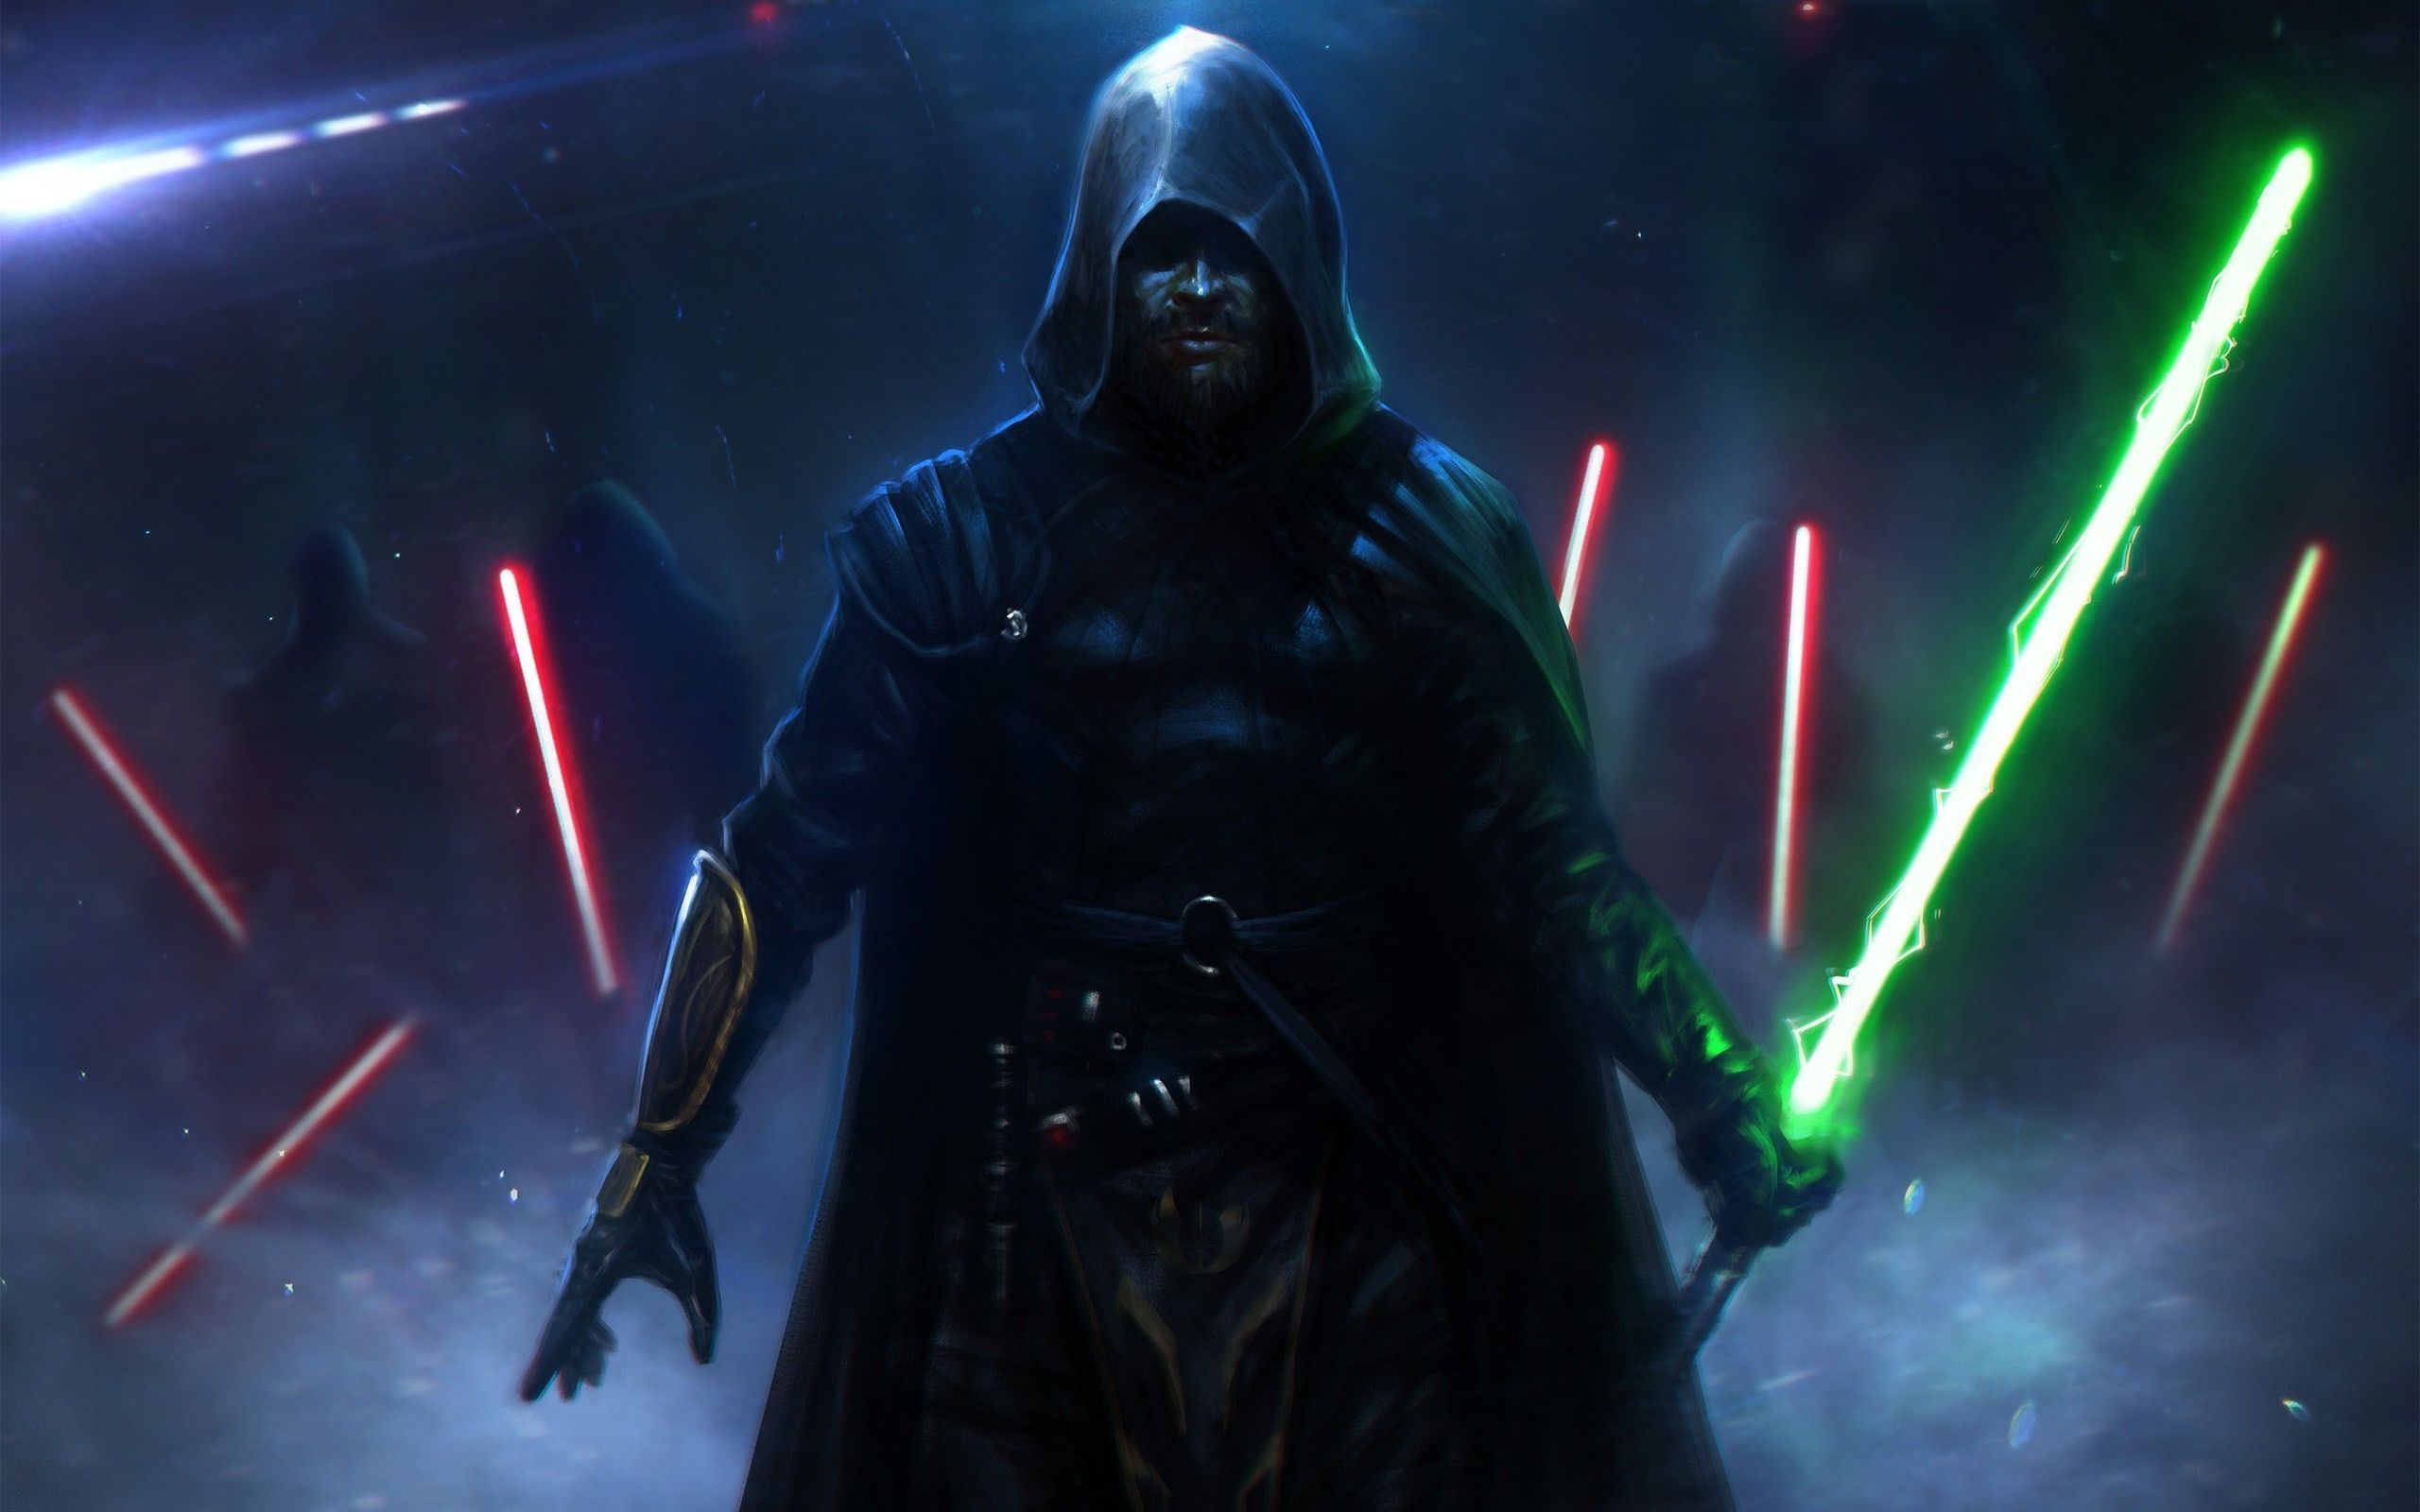 star wars jedi wallpapers - wallpaper cave | free wallpapers